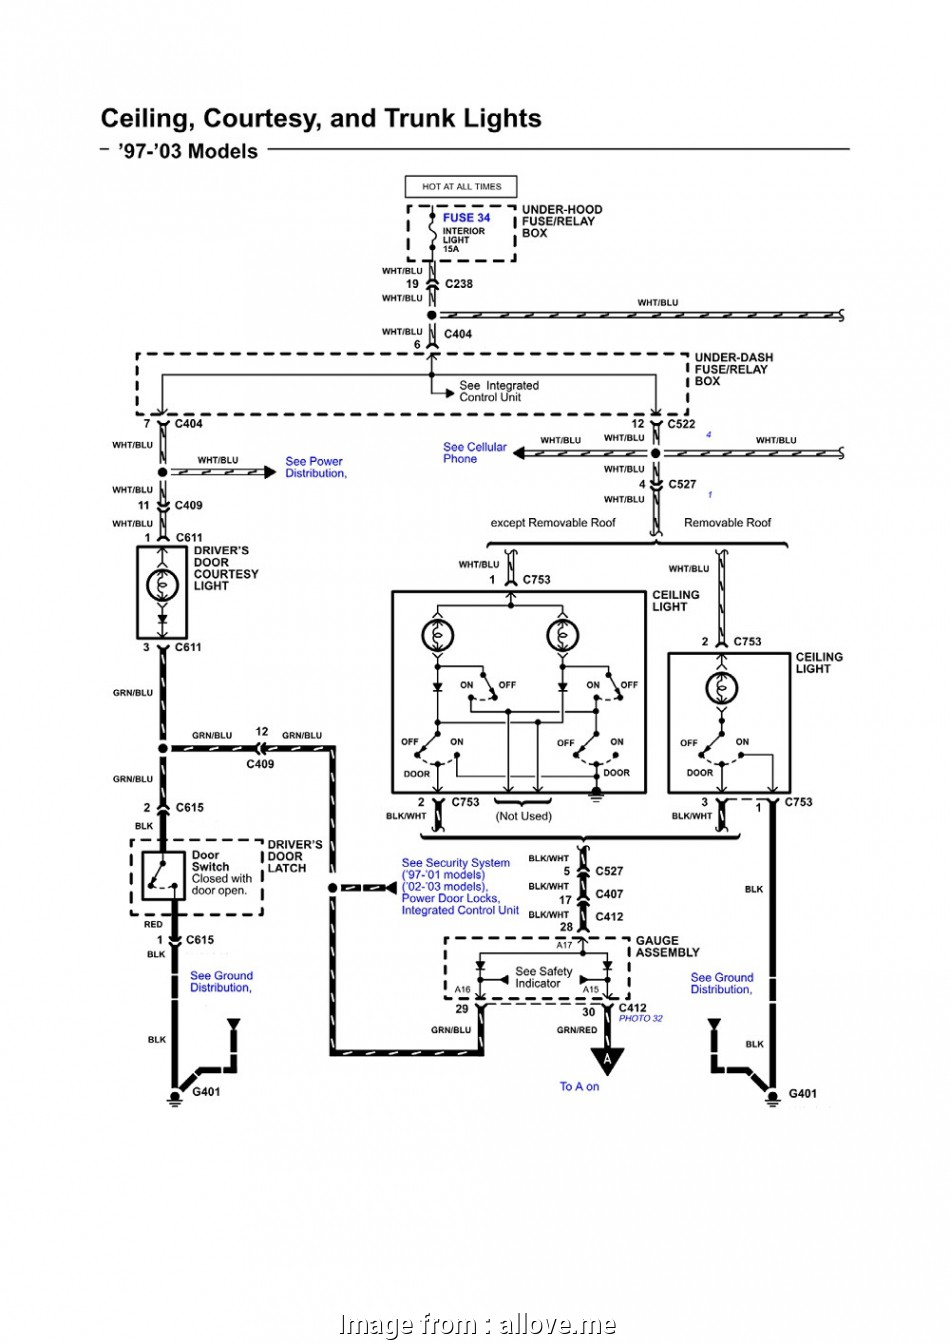 wiring diagram inside ceiling fan Hunter Ceiling, Capacitor Wiring Diagram Http In Fans Diagrams 8 Inside 19 Creative Wiring Diagram Inside Ceiling Fan Collections